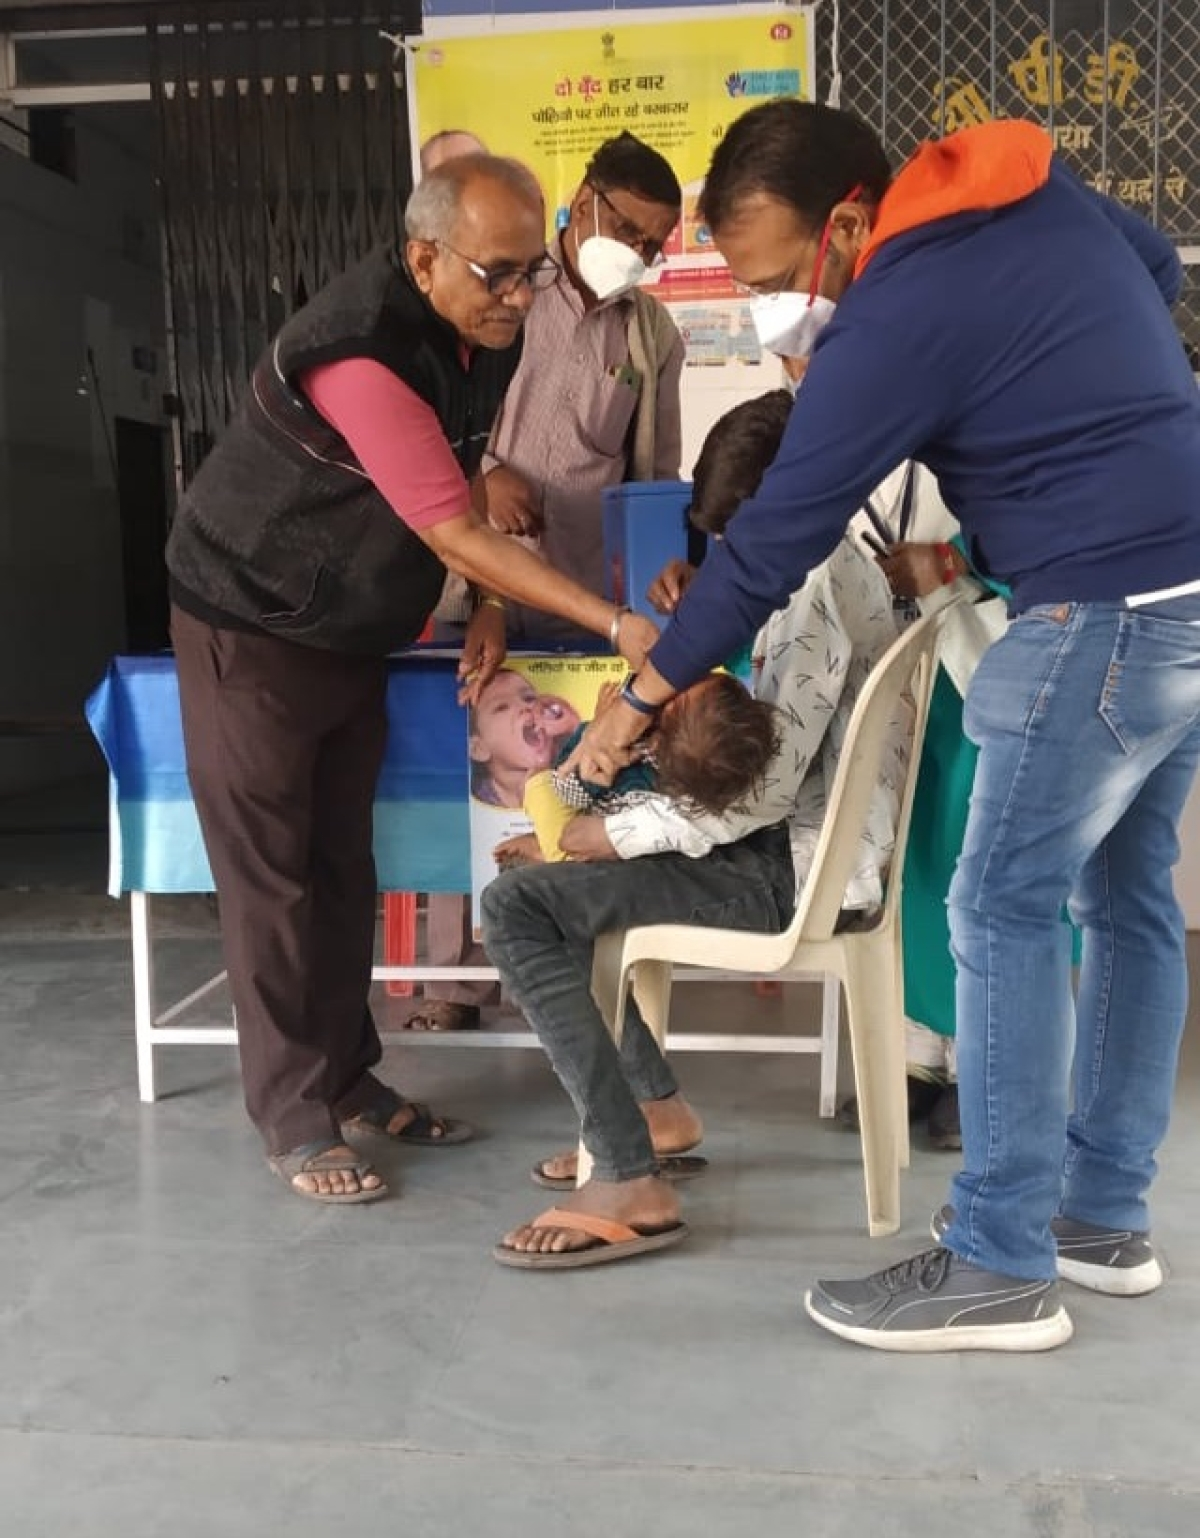 Madhya Pradesh: Pulse Polio Campaign underway in Malwa-Nimar